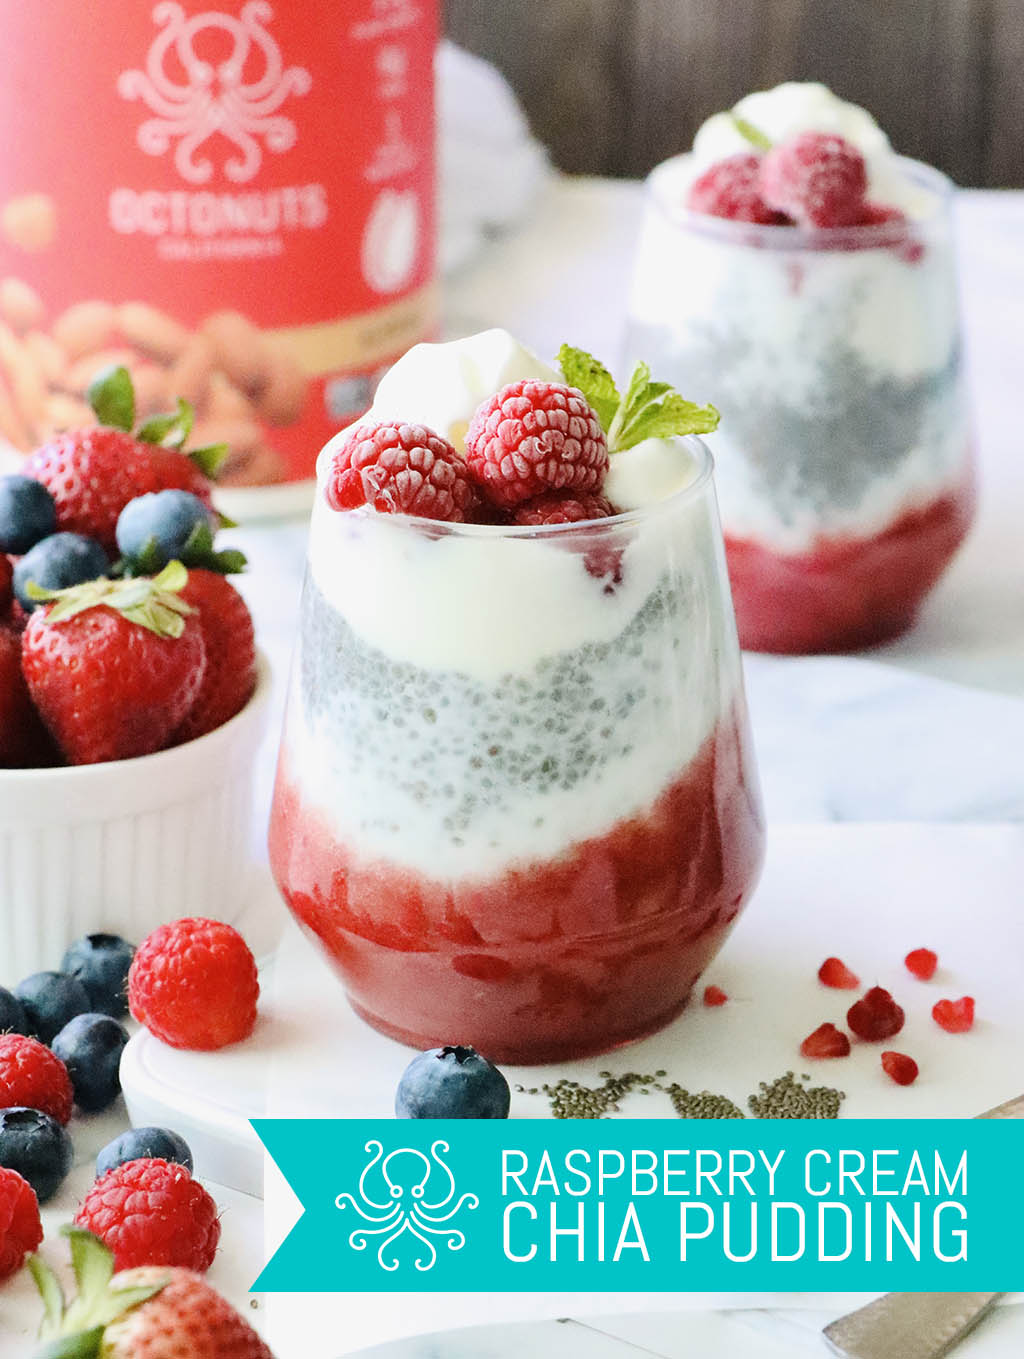 Raspberry Cream Chia Pudding with Octonuts Almond Protein Powder